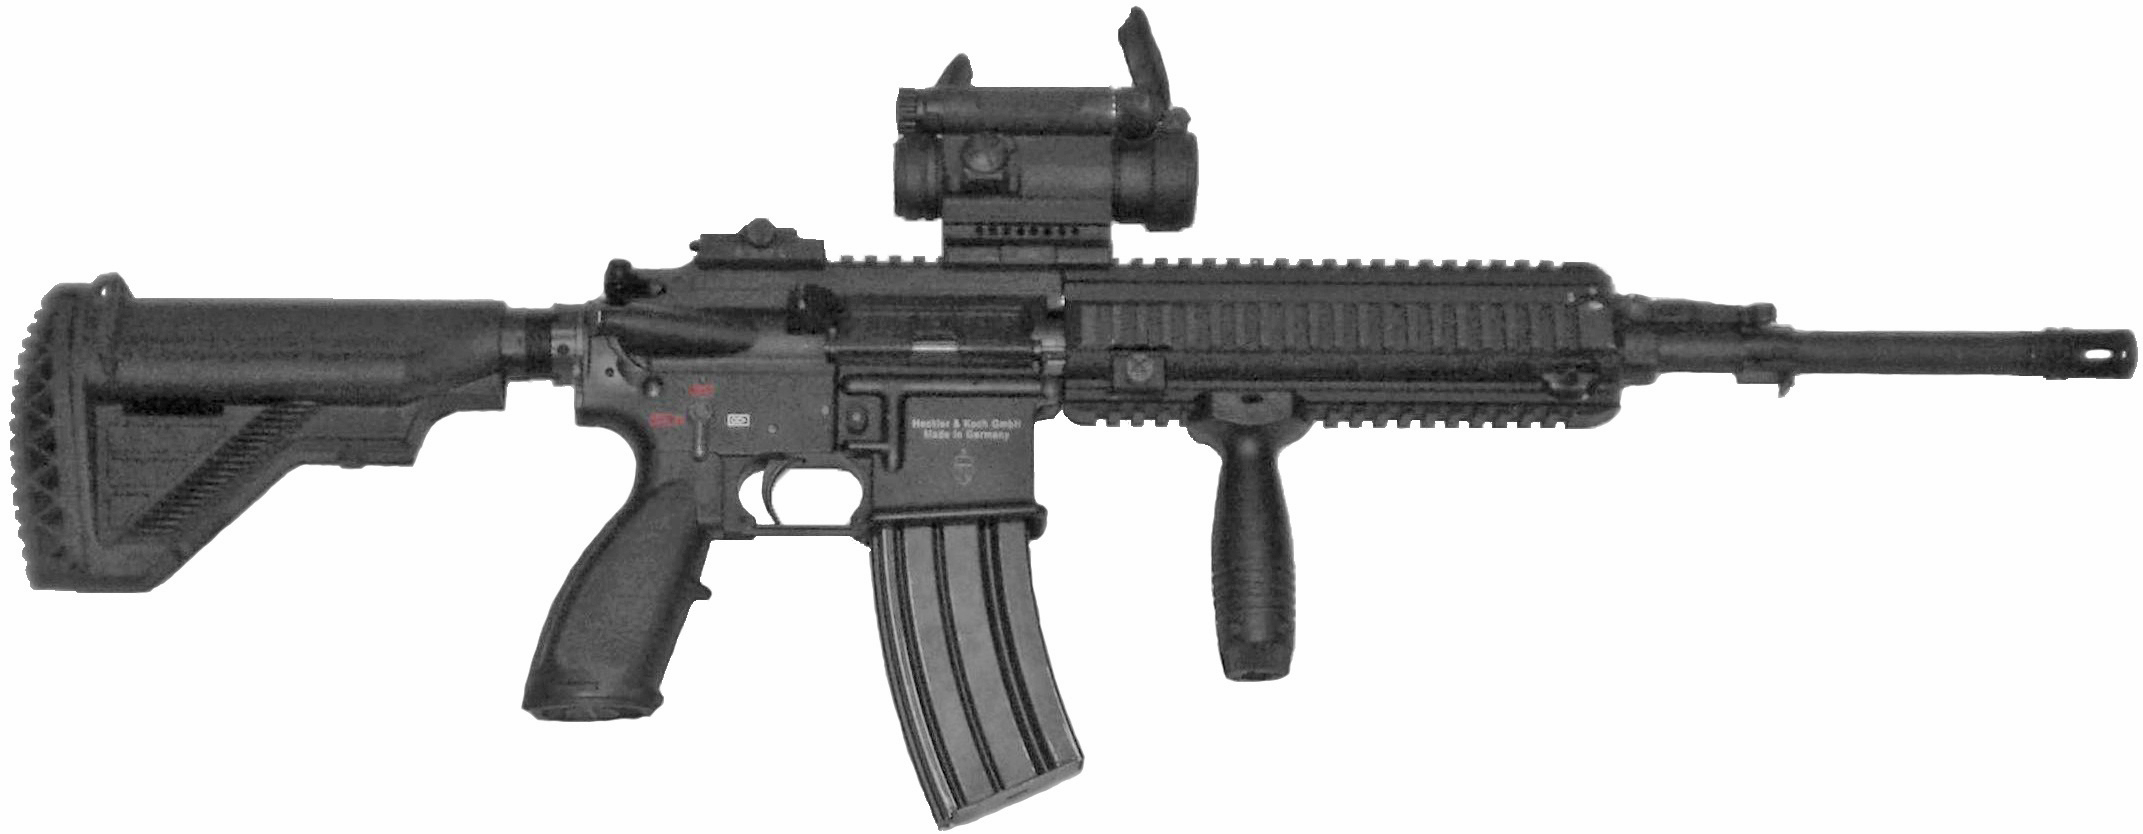 Heckler & Koch HK416 - Wikipedia